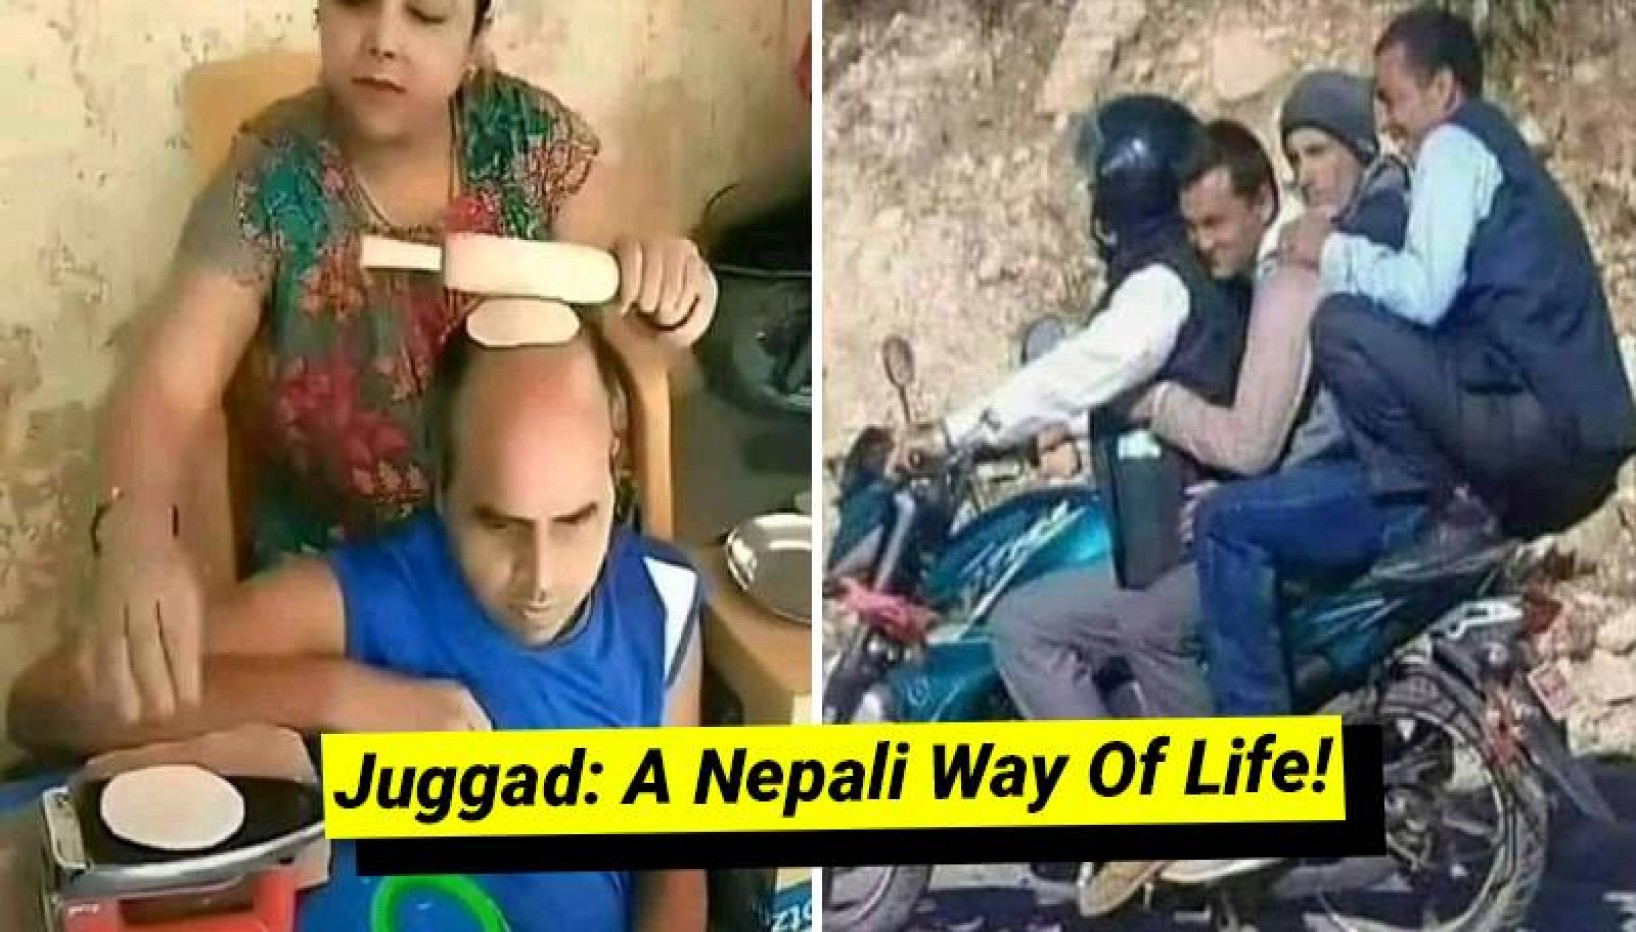 15 Pictures That Prove Nepalis Are Expert At Juggad